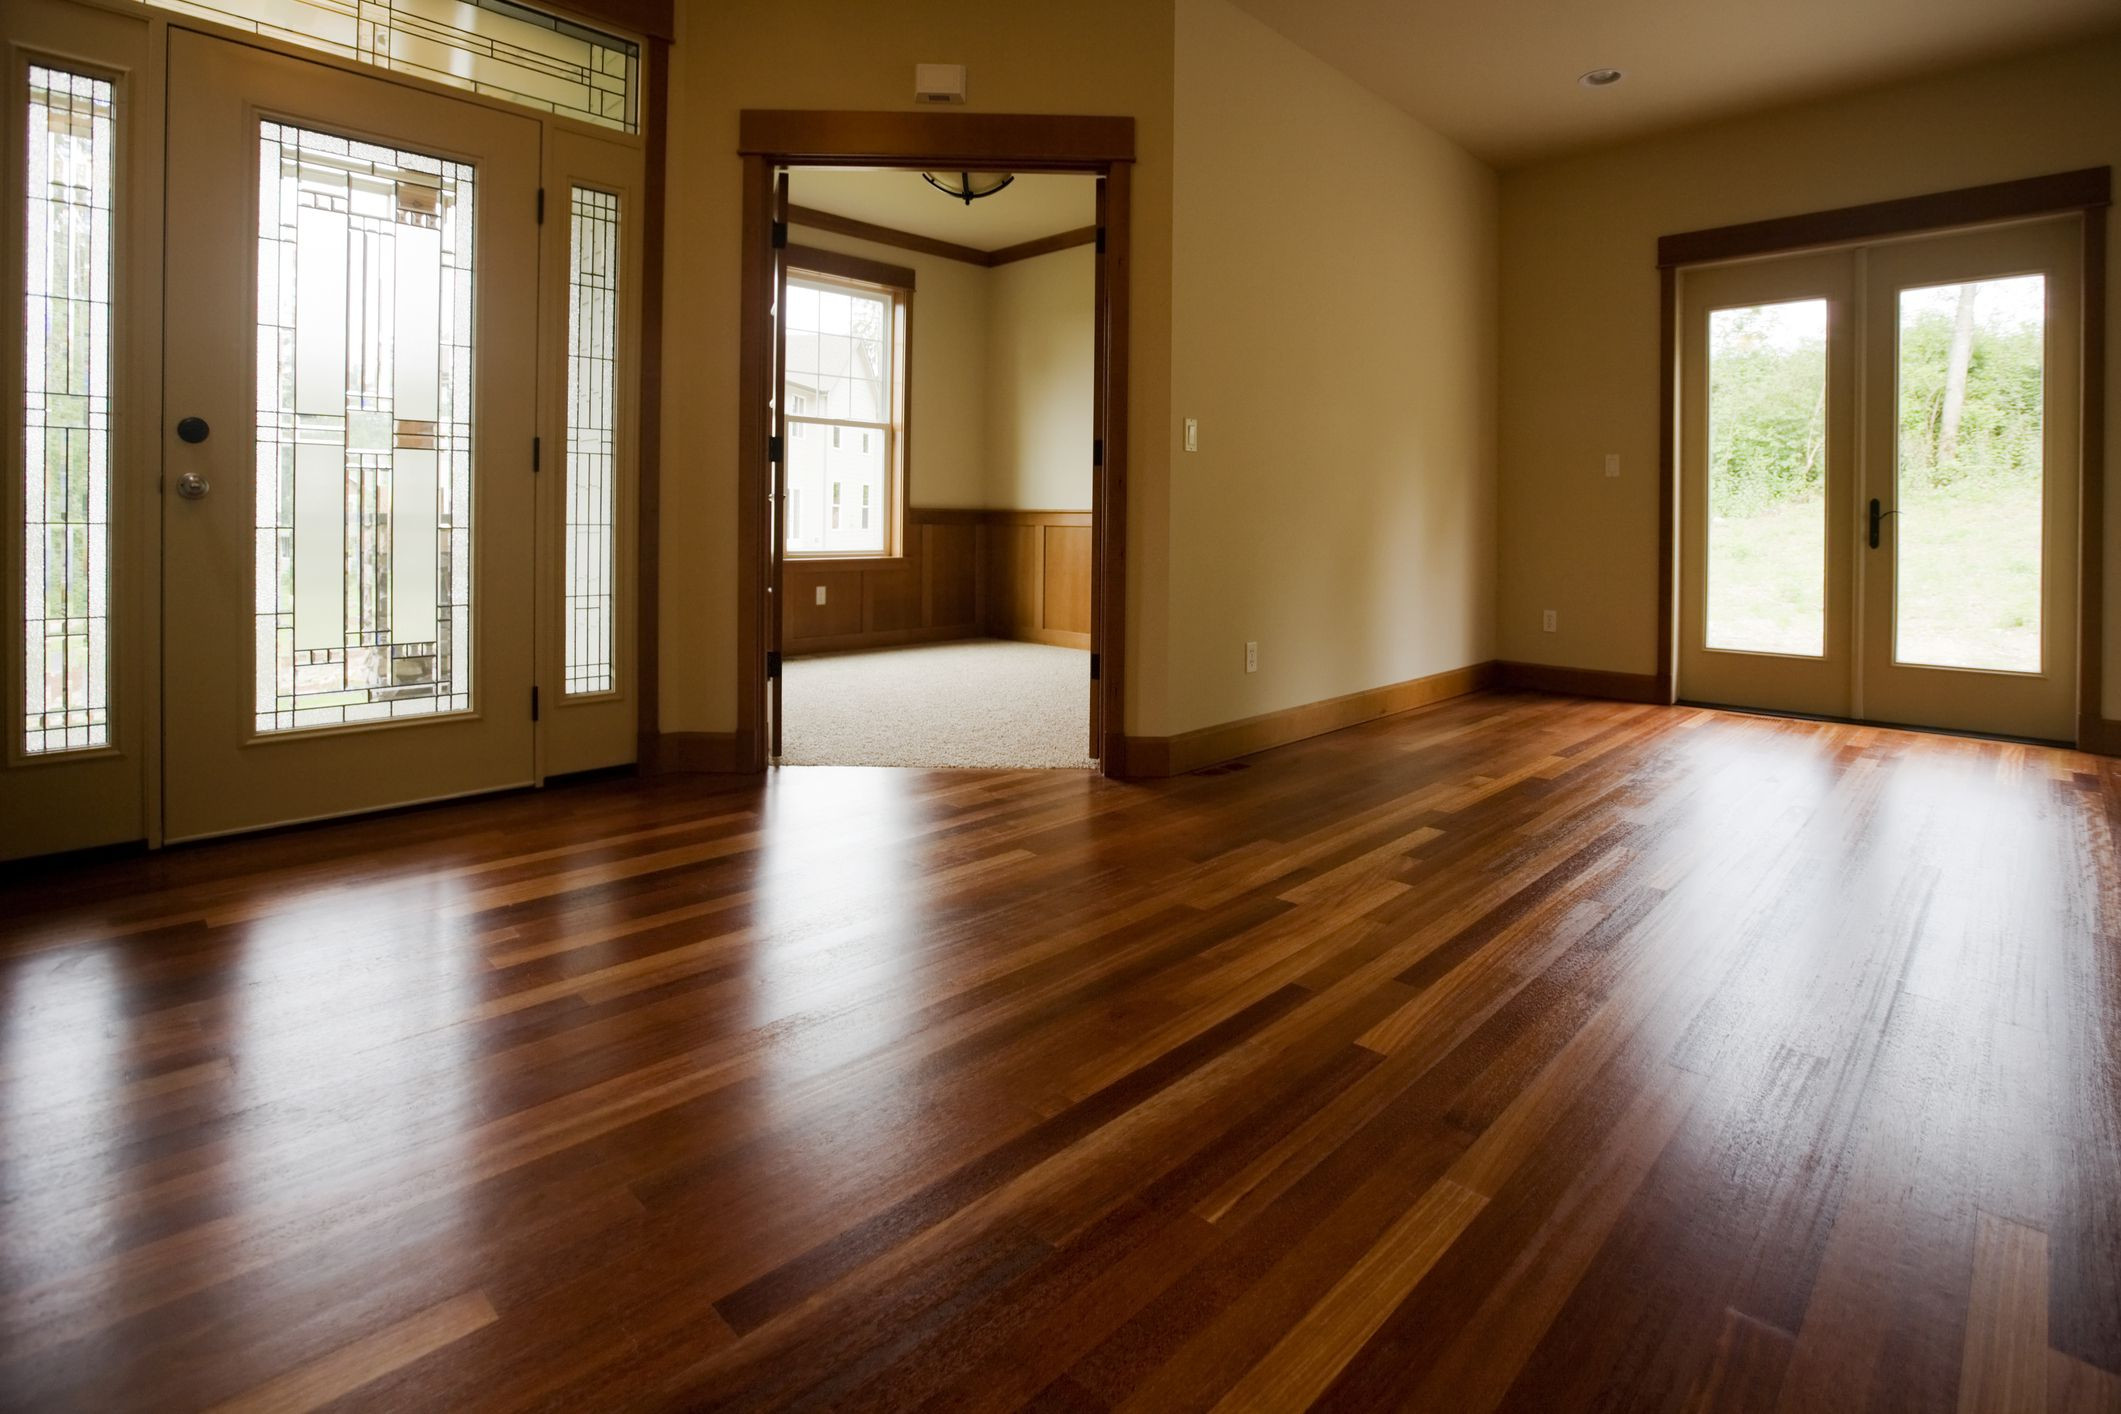 bruce maple cherry hardwood flooring of types of hardwood flooring buyers guide regarding gettyimages 157332889 5886d8383df78c2ccd65d4e1